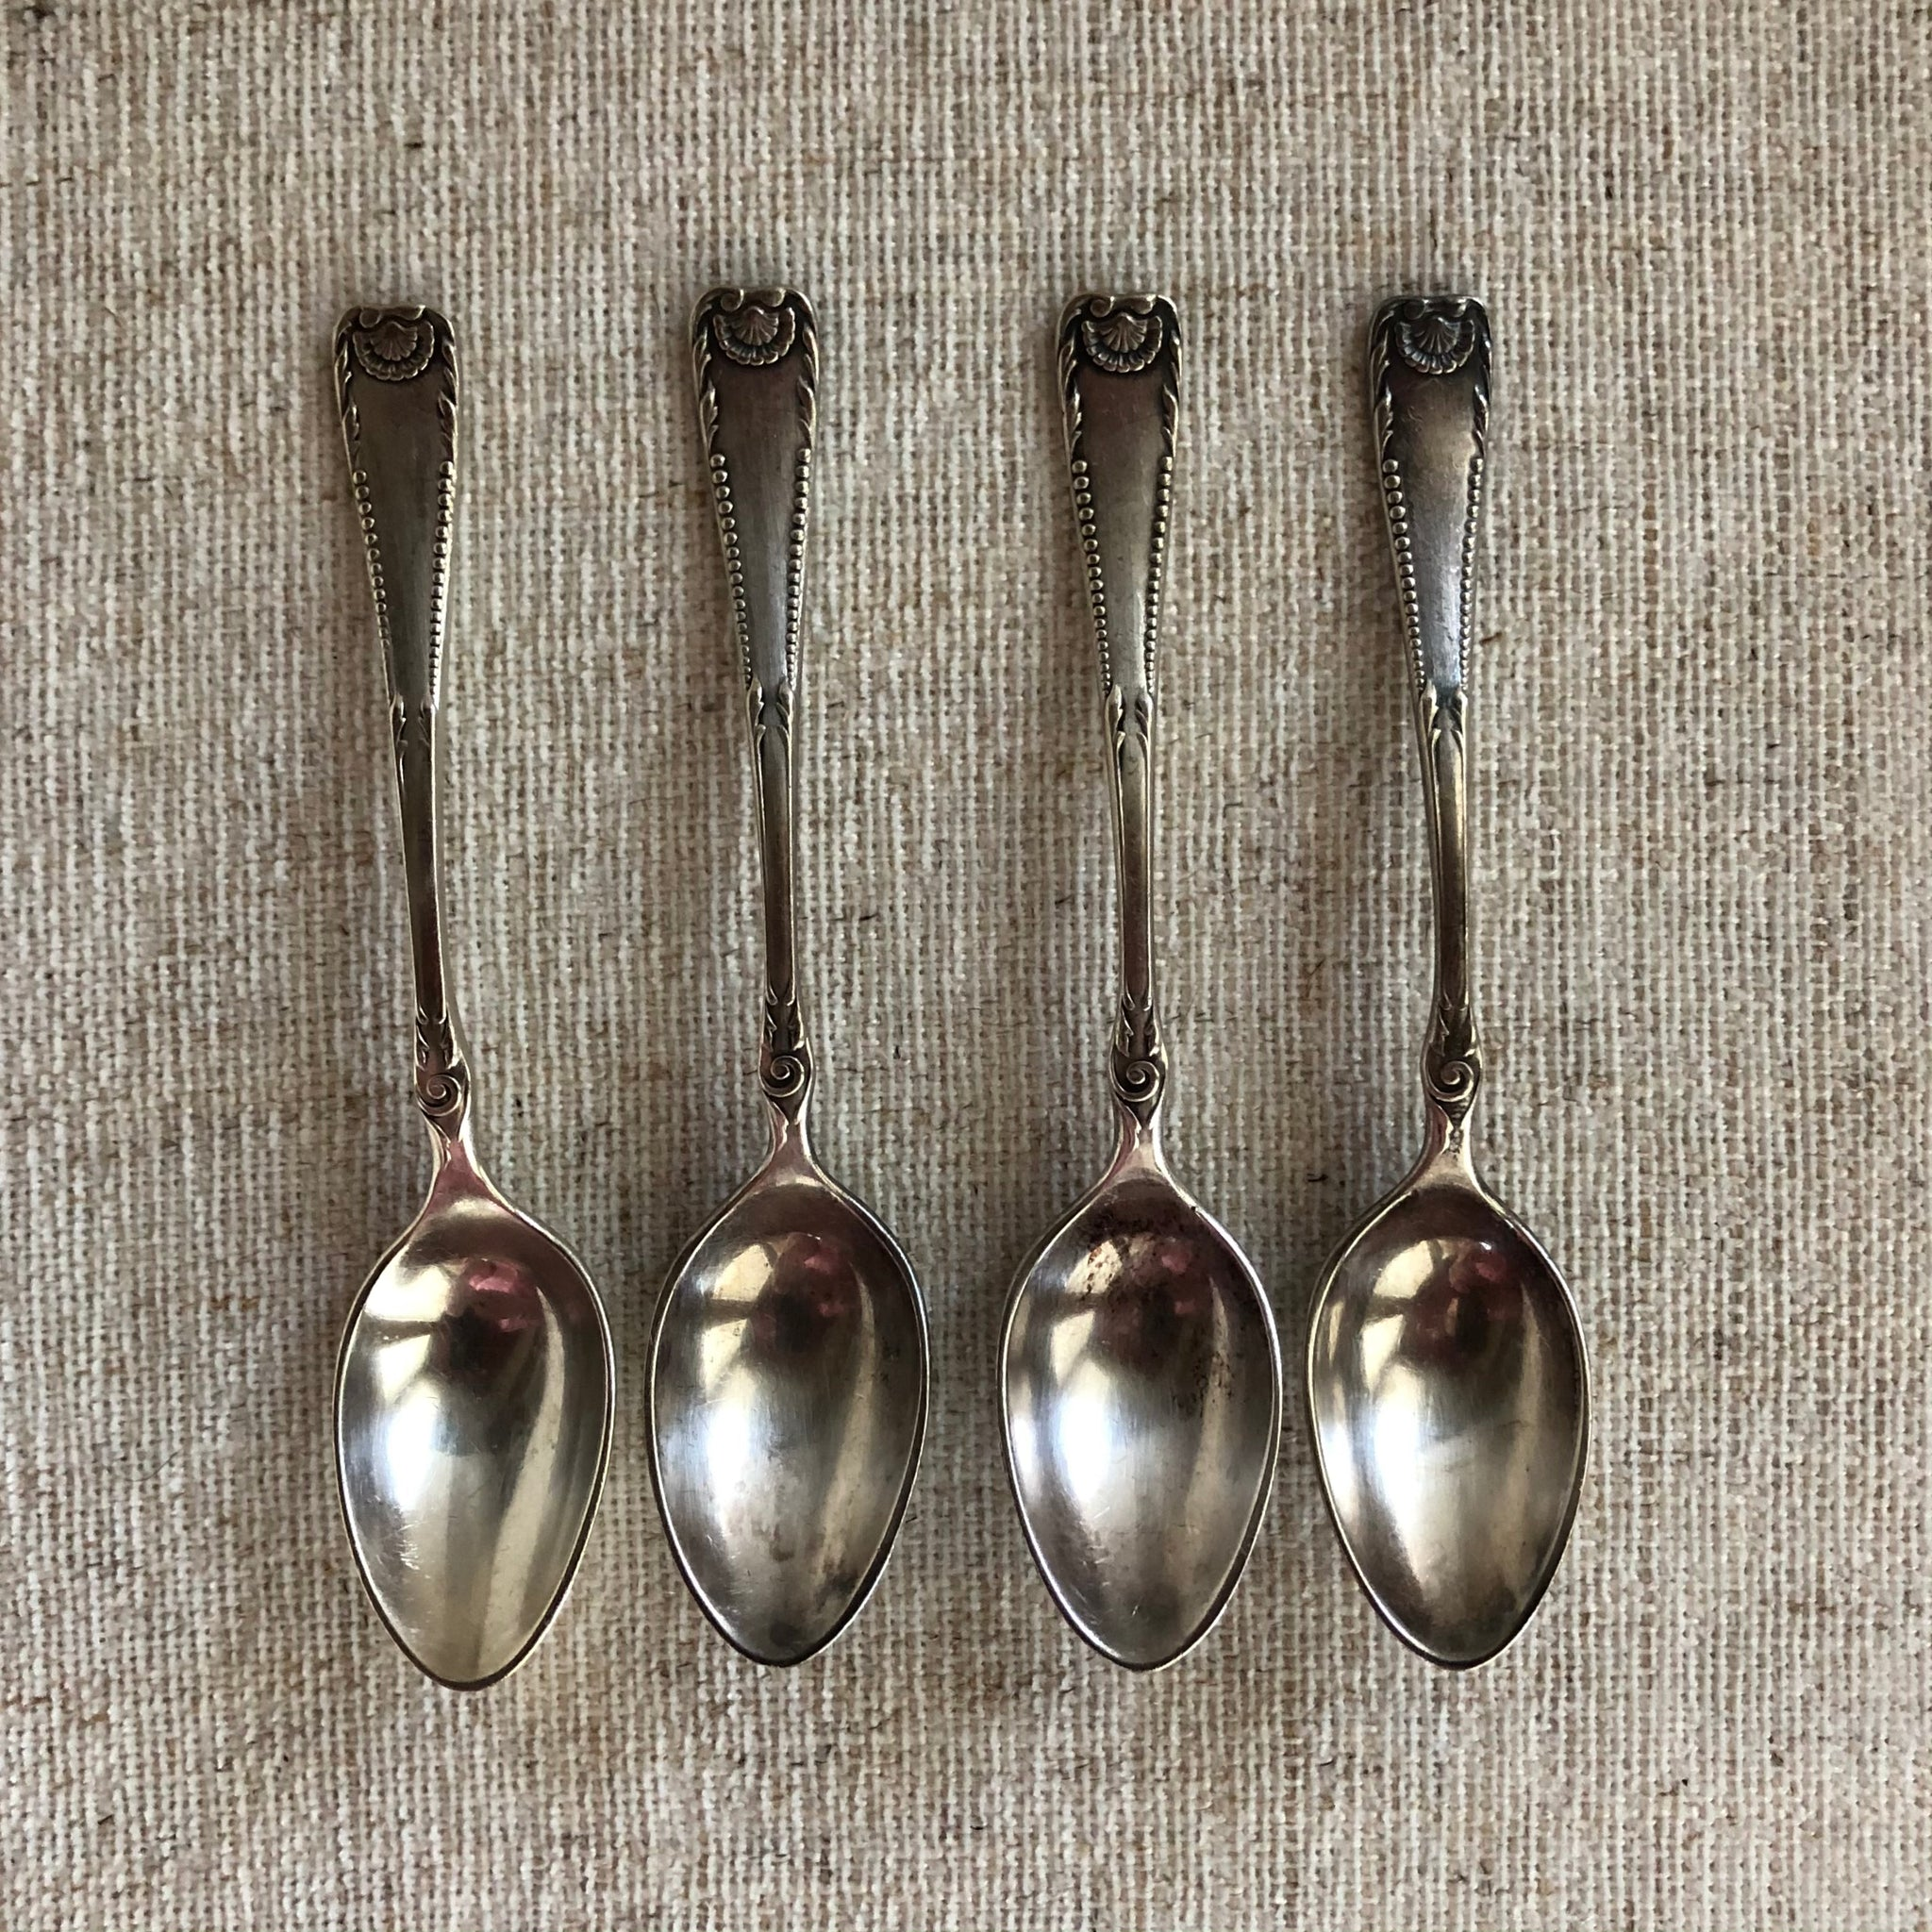 Southern Shell Demitasse Spoon